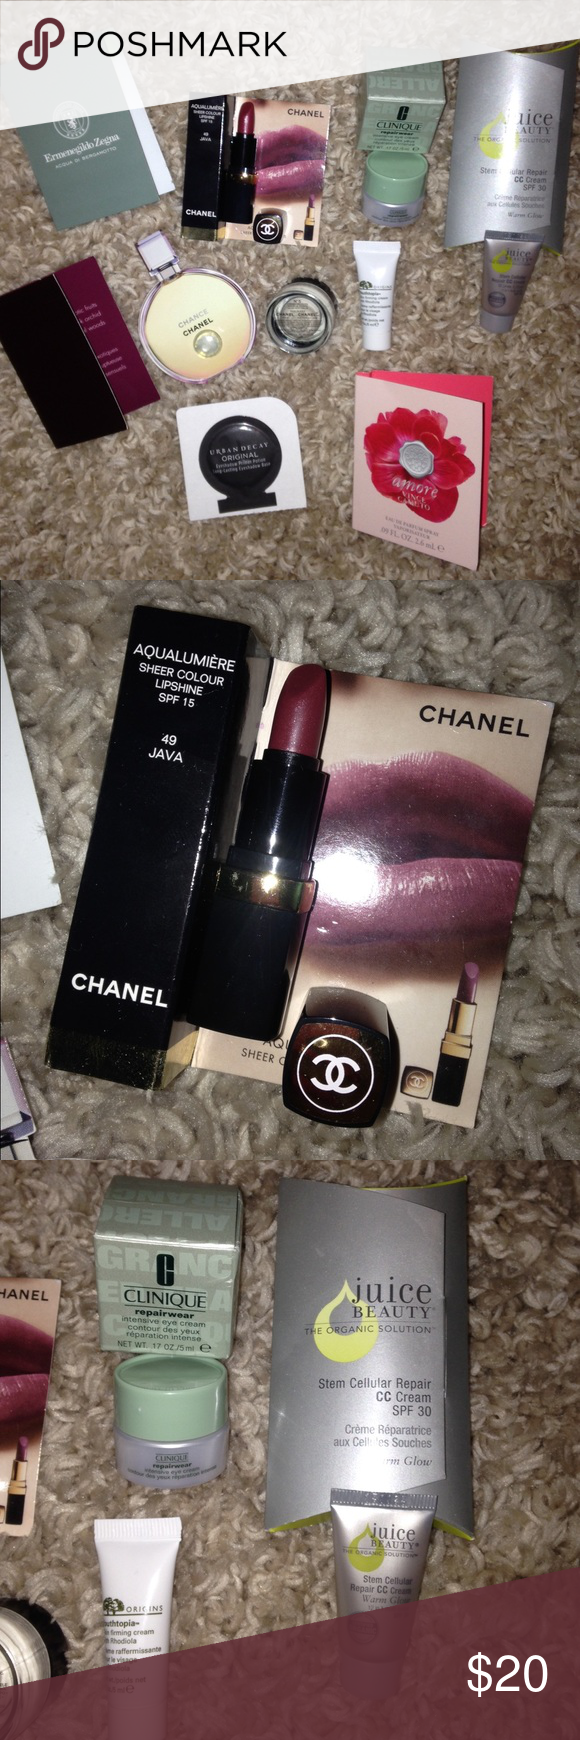 Cosmetic Lot Chanel, Clinique, Juice Beauty, Youthtopia & Perfume (3) Mini Vials. These are all Mini size products. Makeup